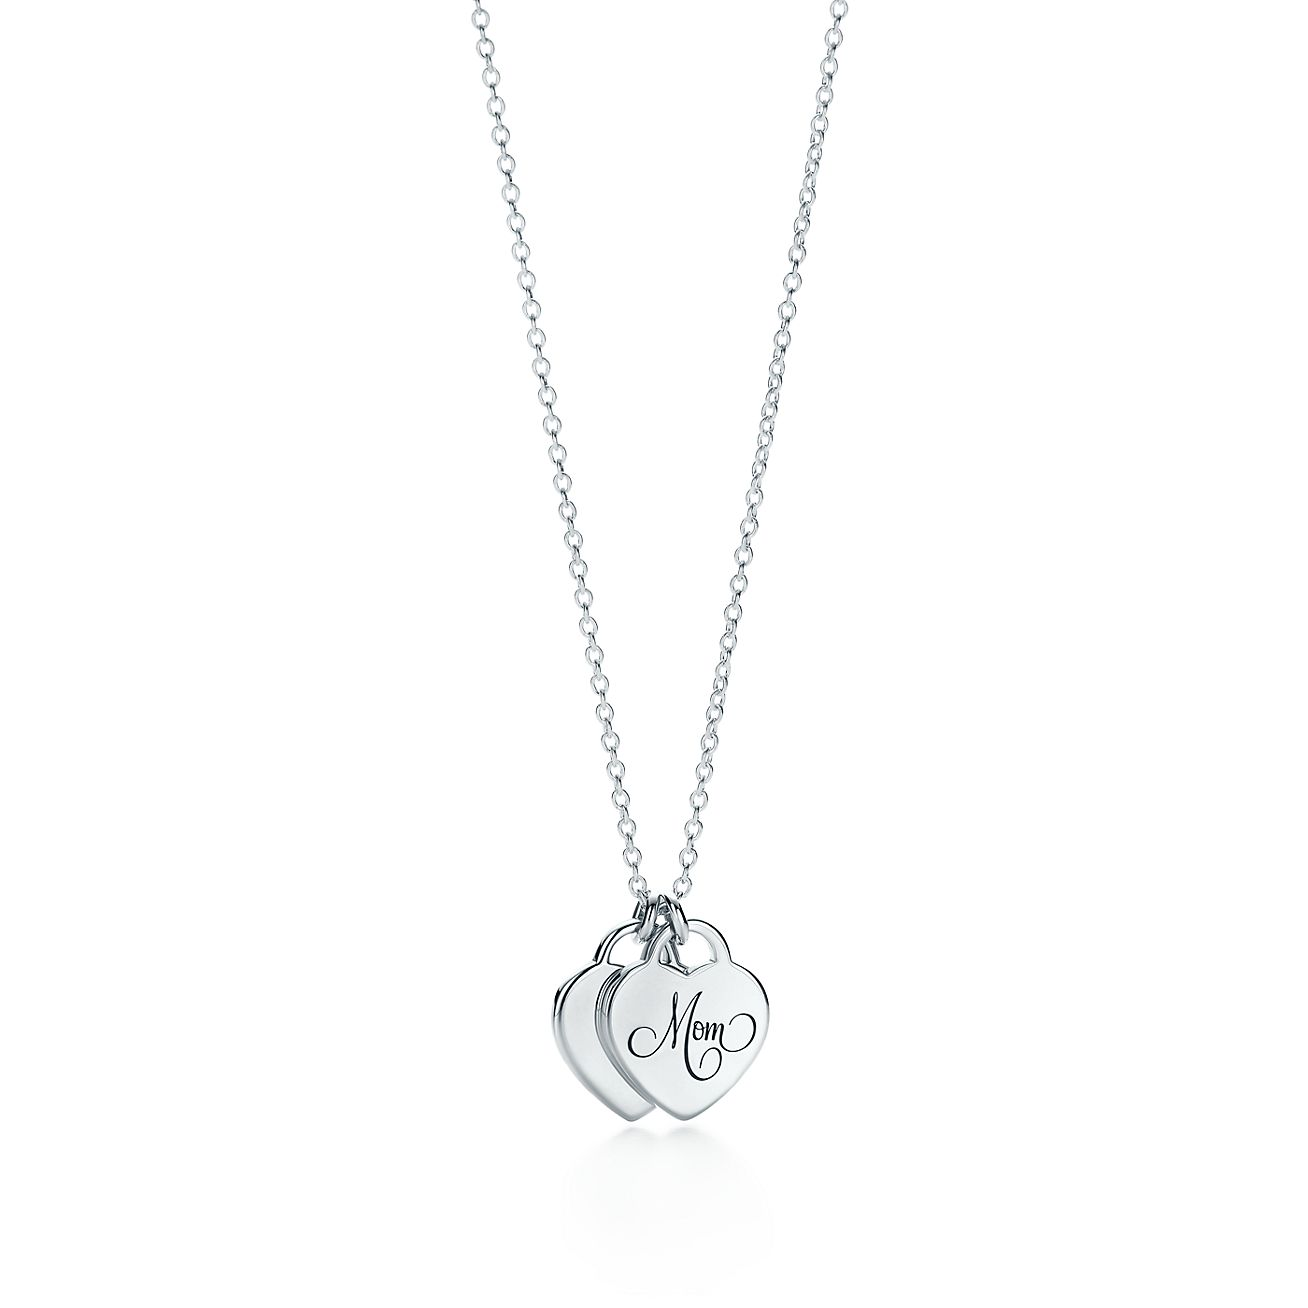 Tiffany hearts mom heart tag duo pendant in sterling silver mini tiffany heartsmom heart tagbrduo pendant aloadofball Image collections